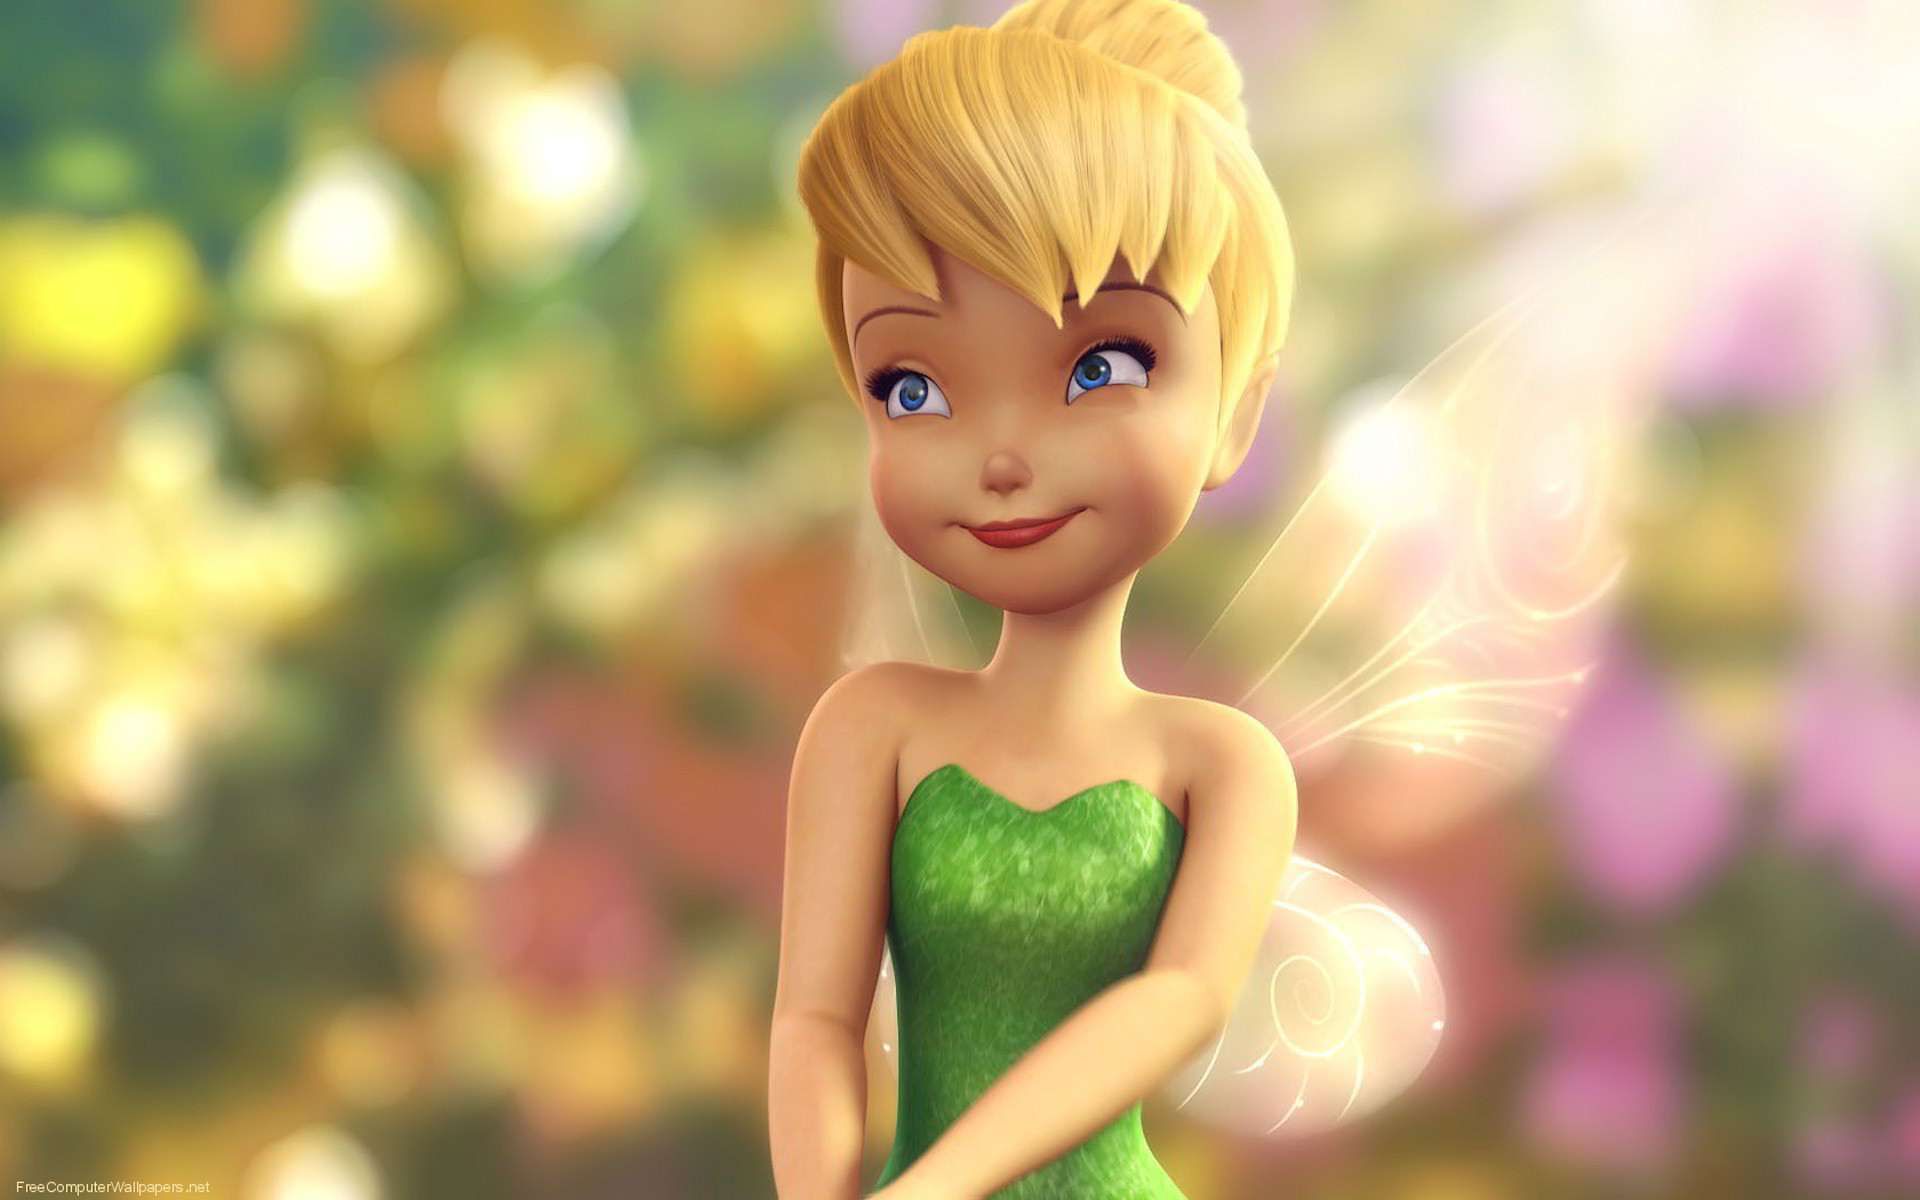 Tinkerbell peter pan wallpaper background 1920x1200